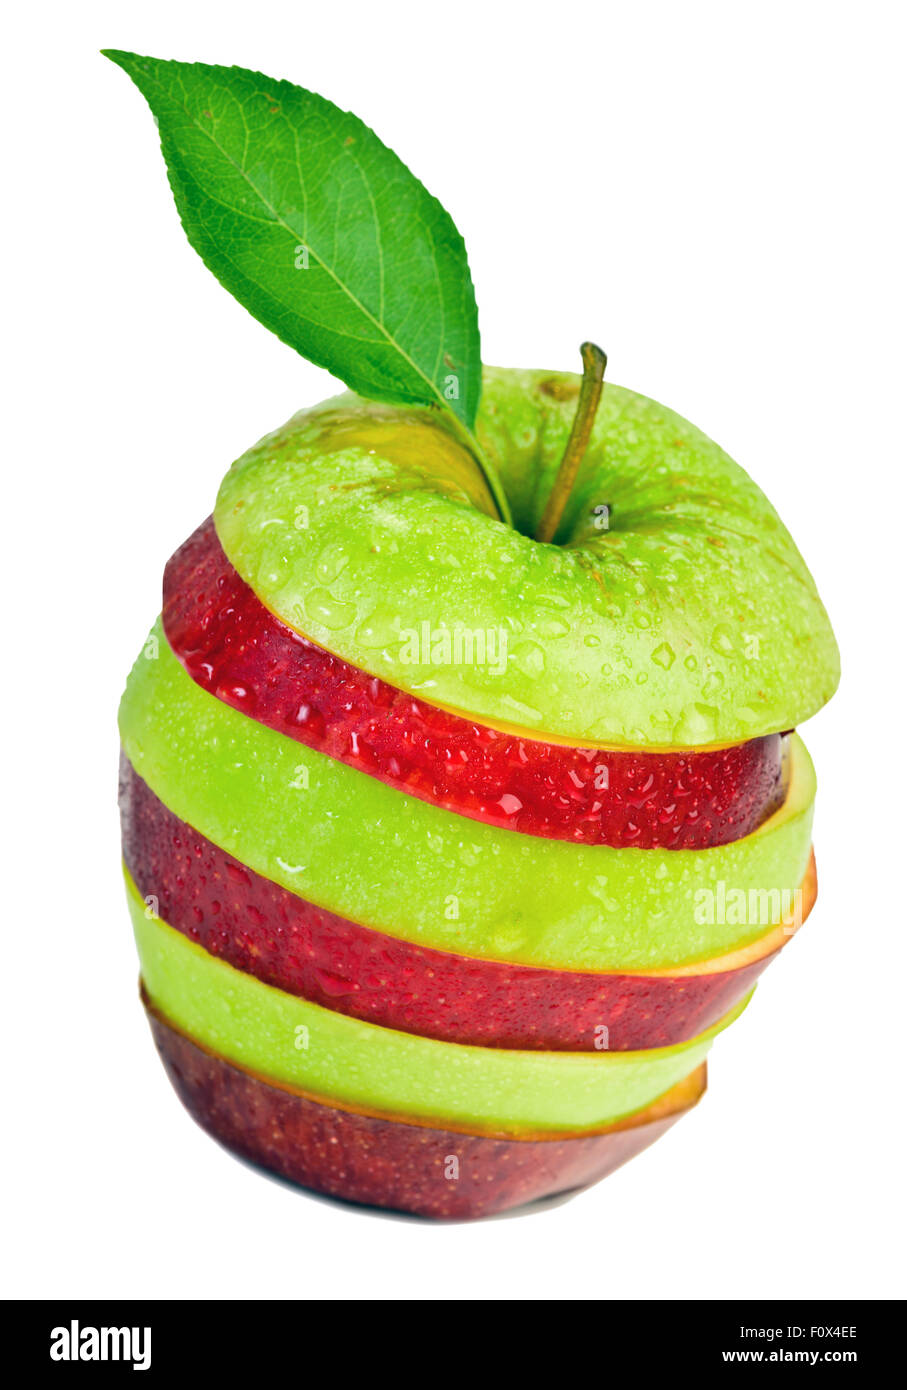 Sliced and mixed green and red apple on isolated white background - Stock Image